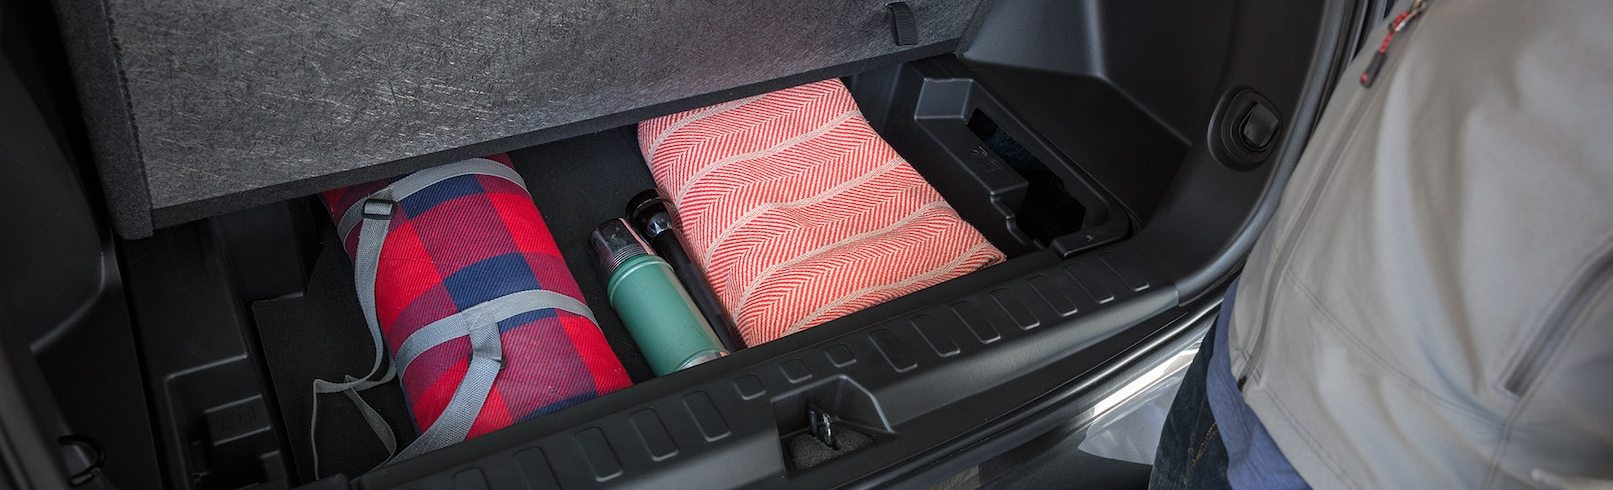 Storage in the 2020 Equinox